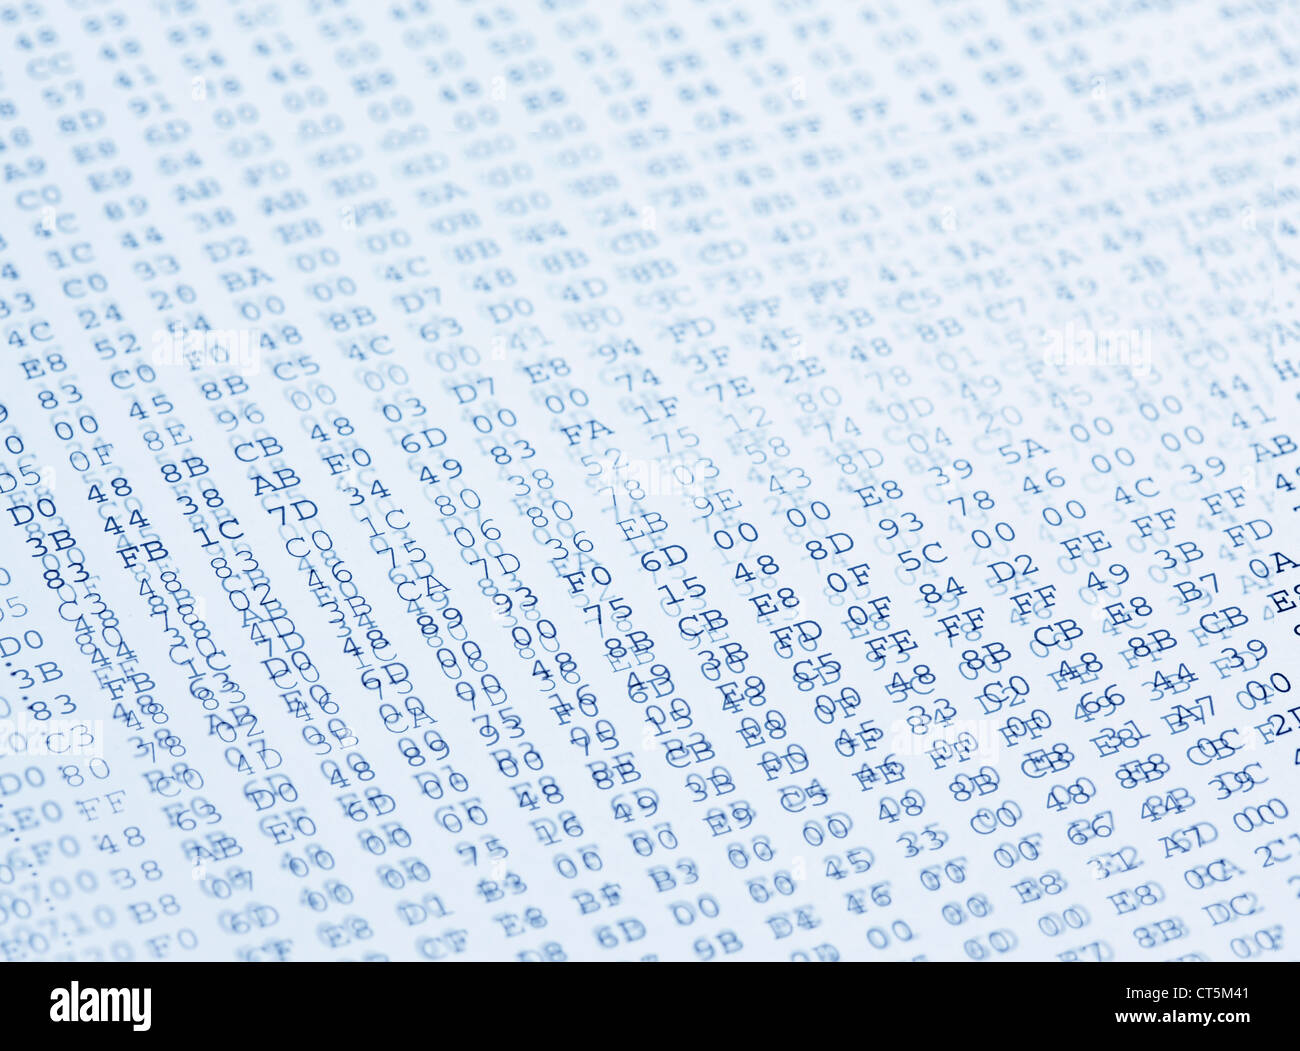 Codes background in blue tone - Stock Image